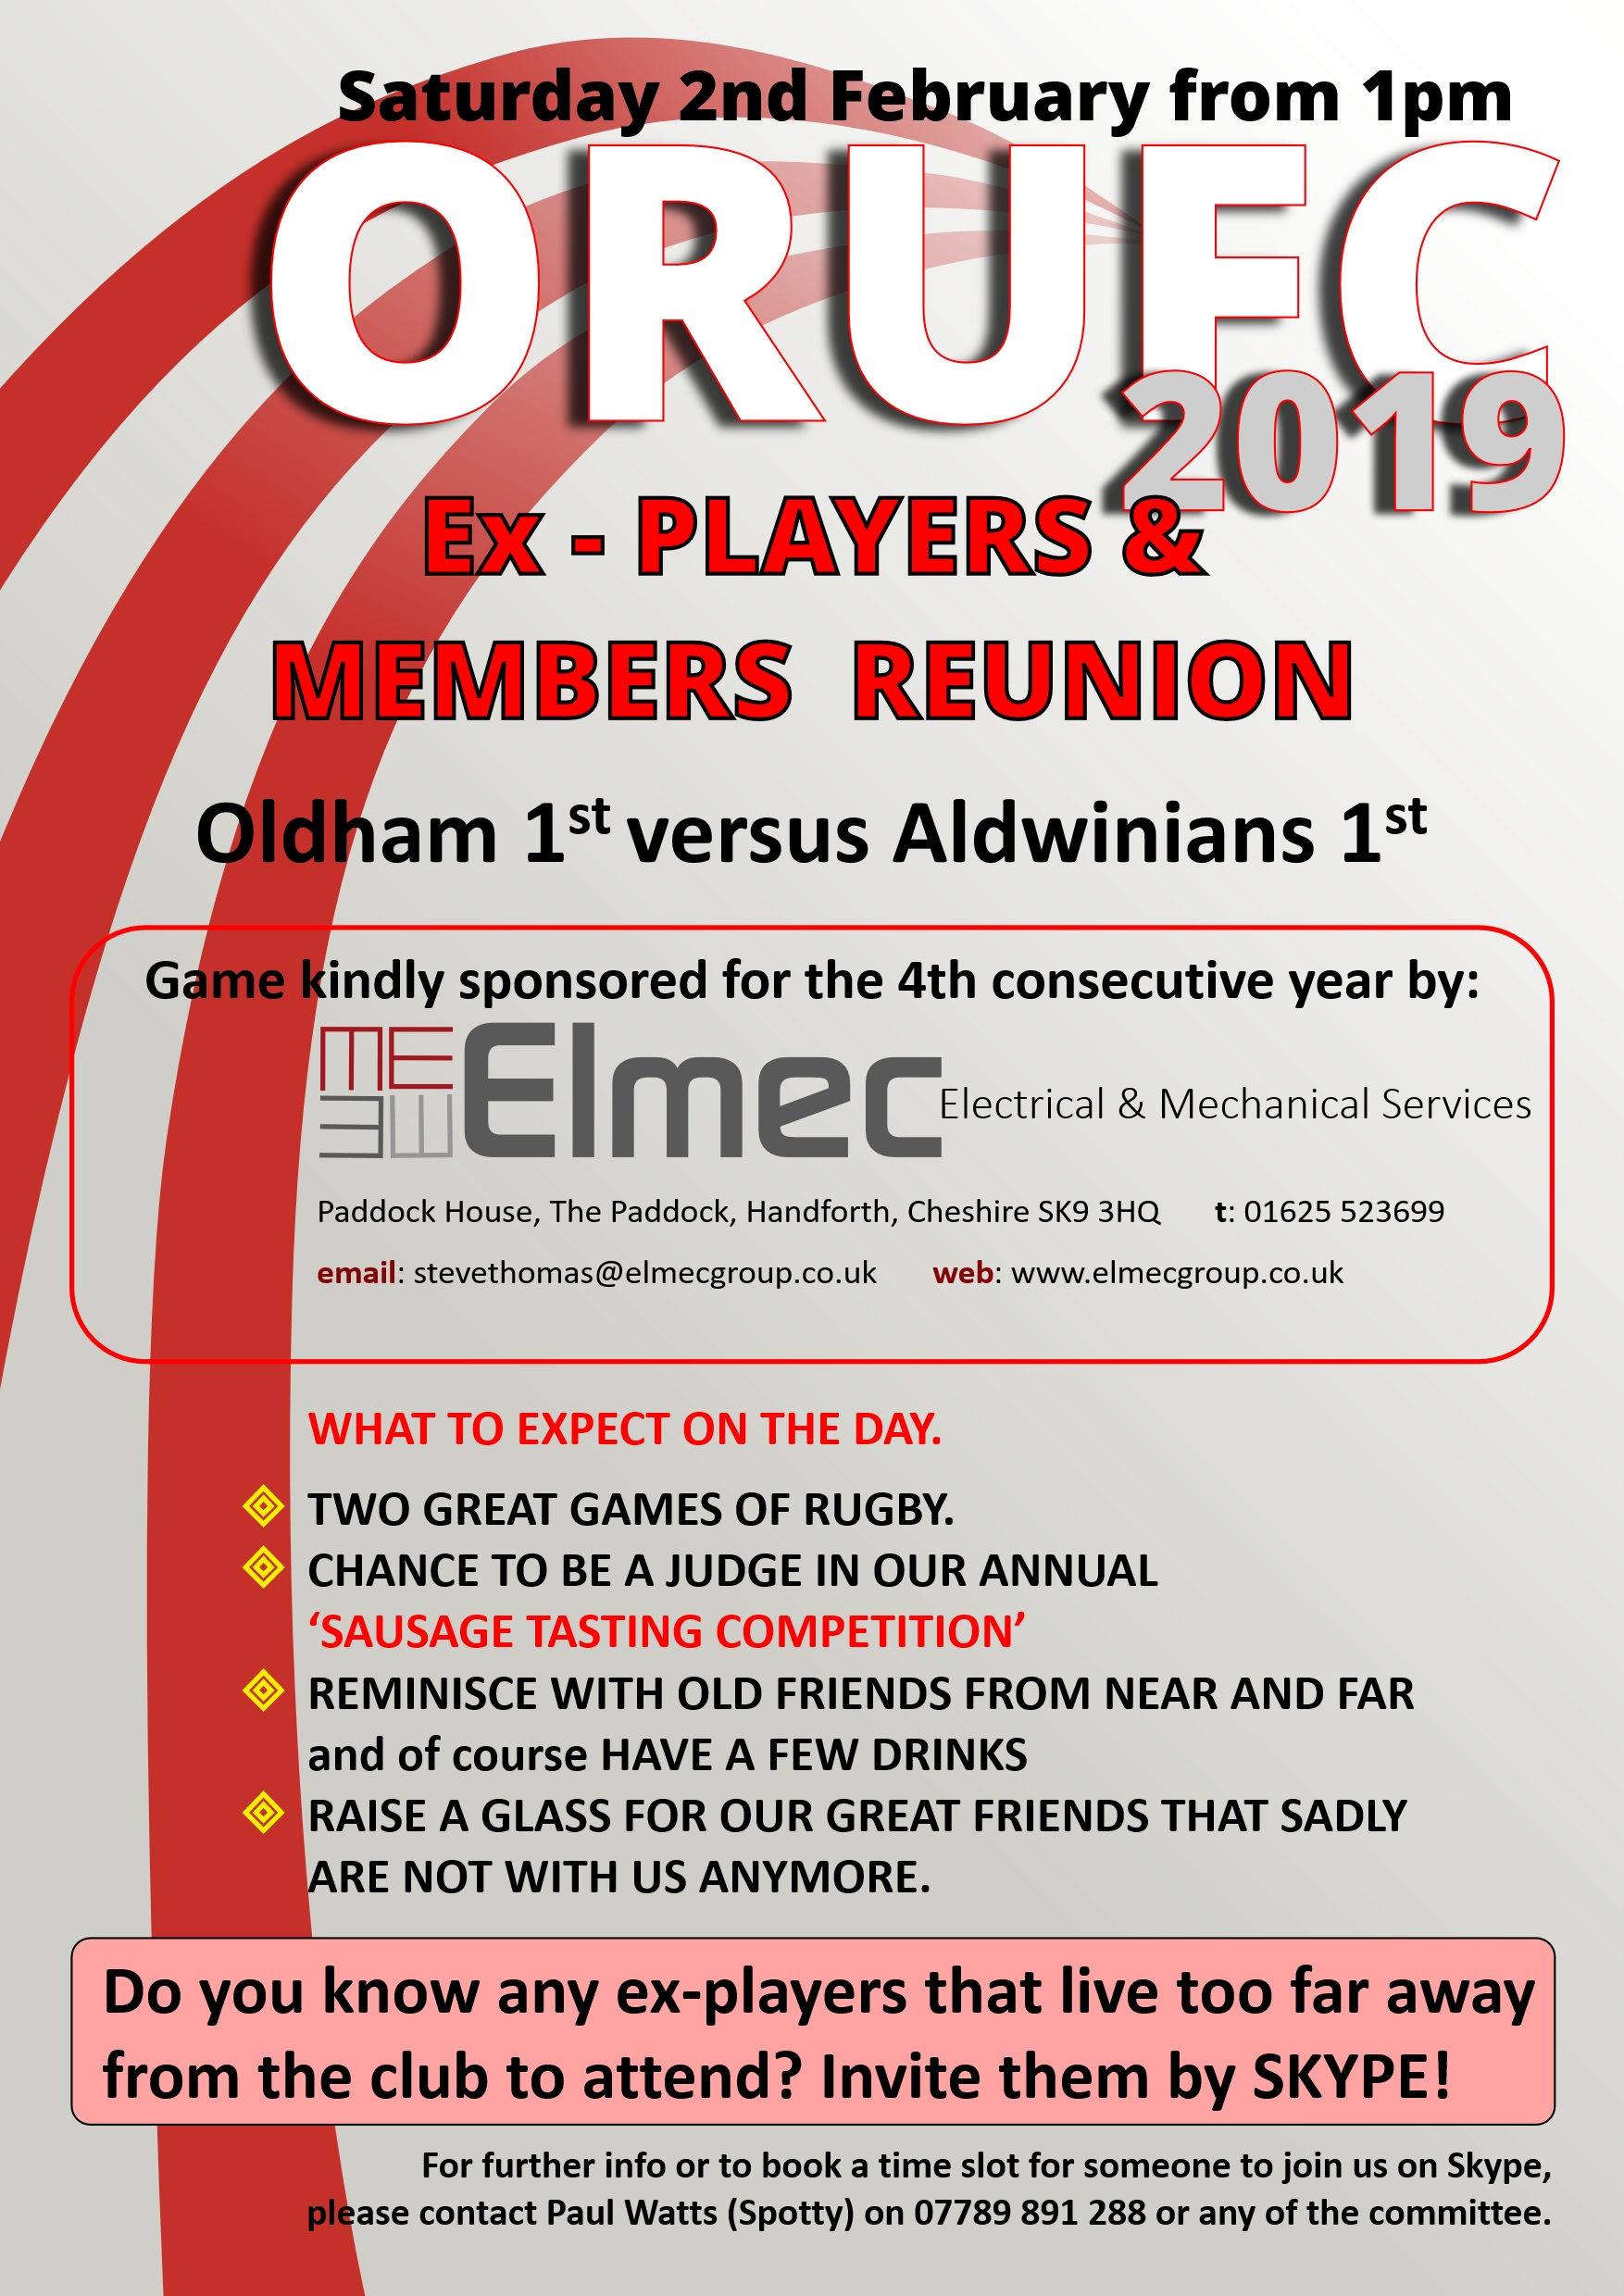 ORUFC players and members reunion Saturday 2nd Feb from 1pm